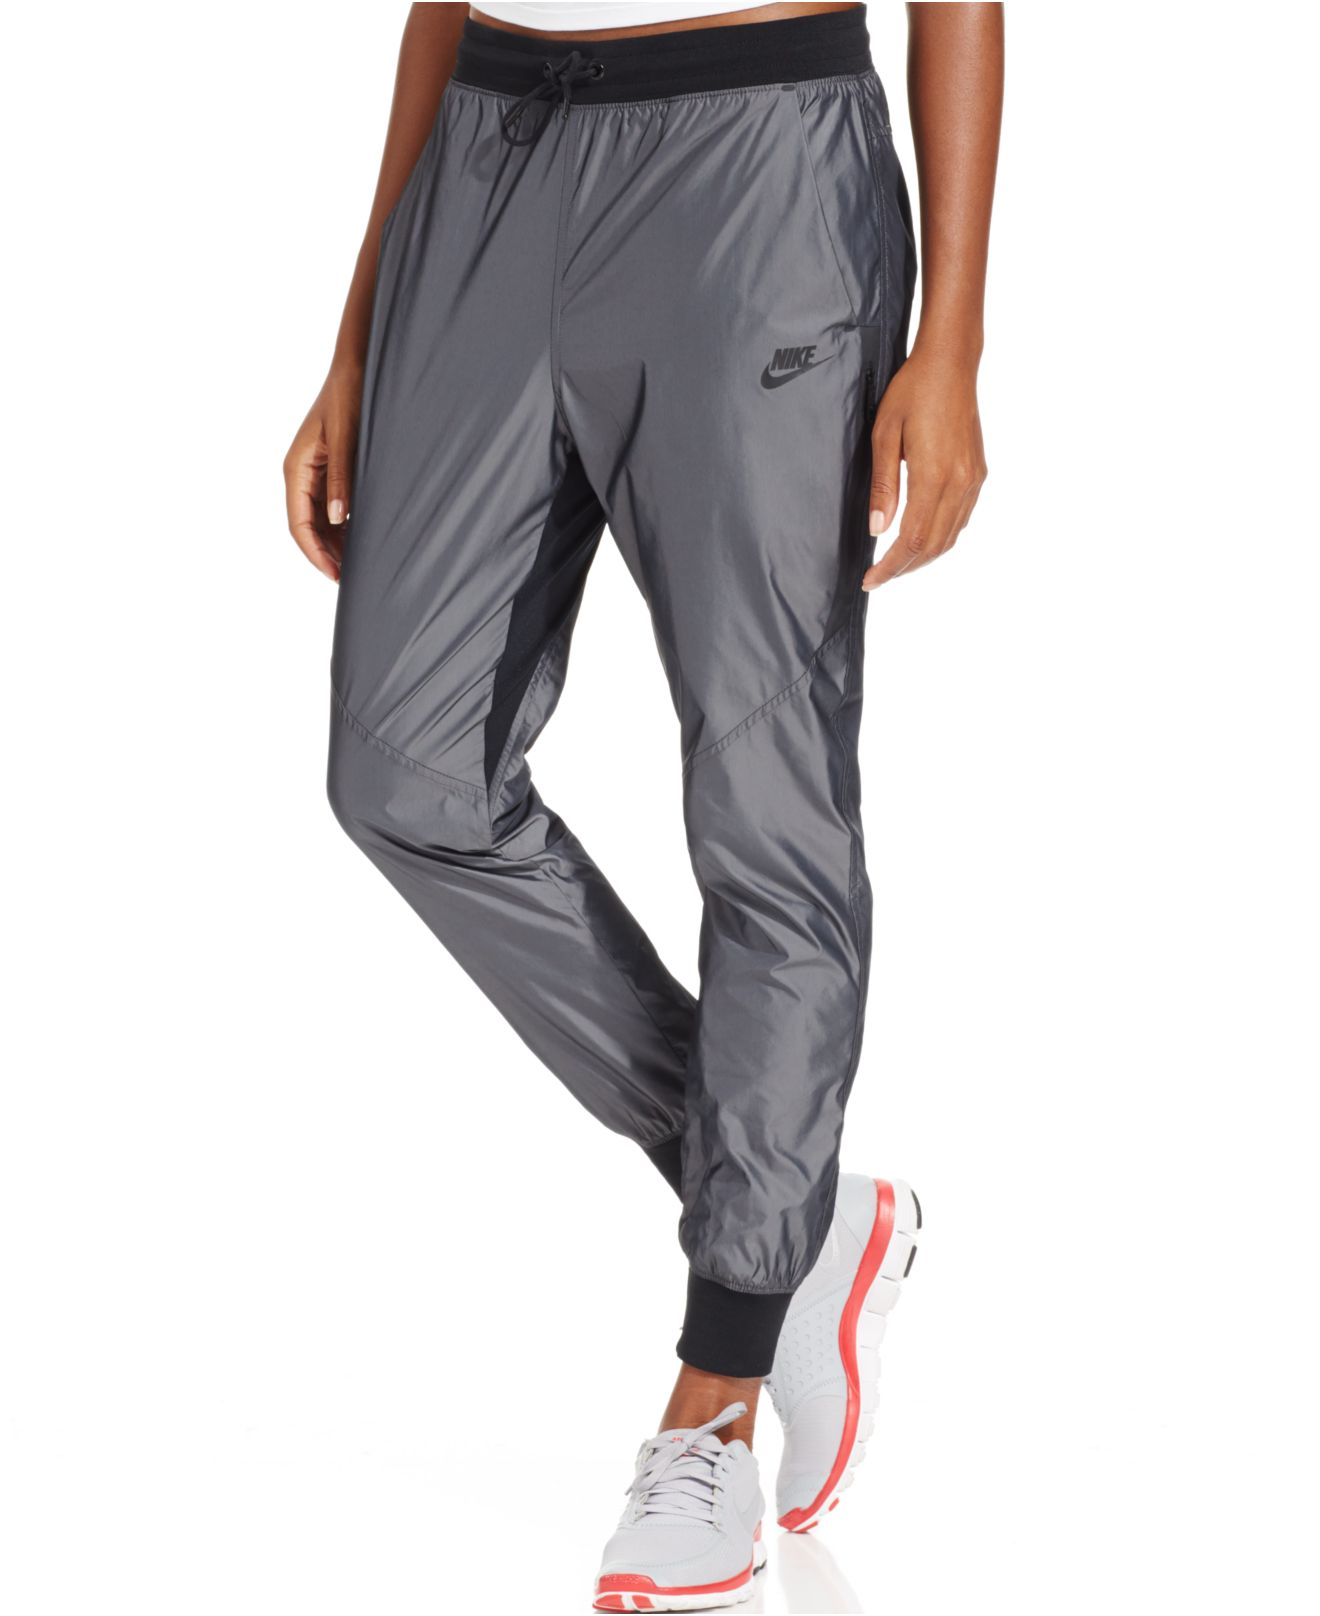 Brilliant Nike Soccer Knit Pant Clothing  Shipped Free At Zappos